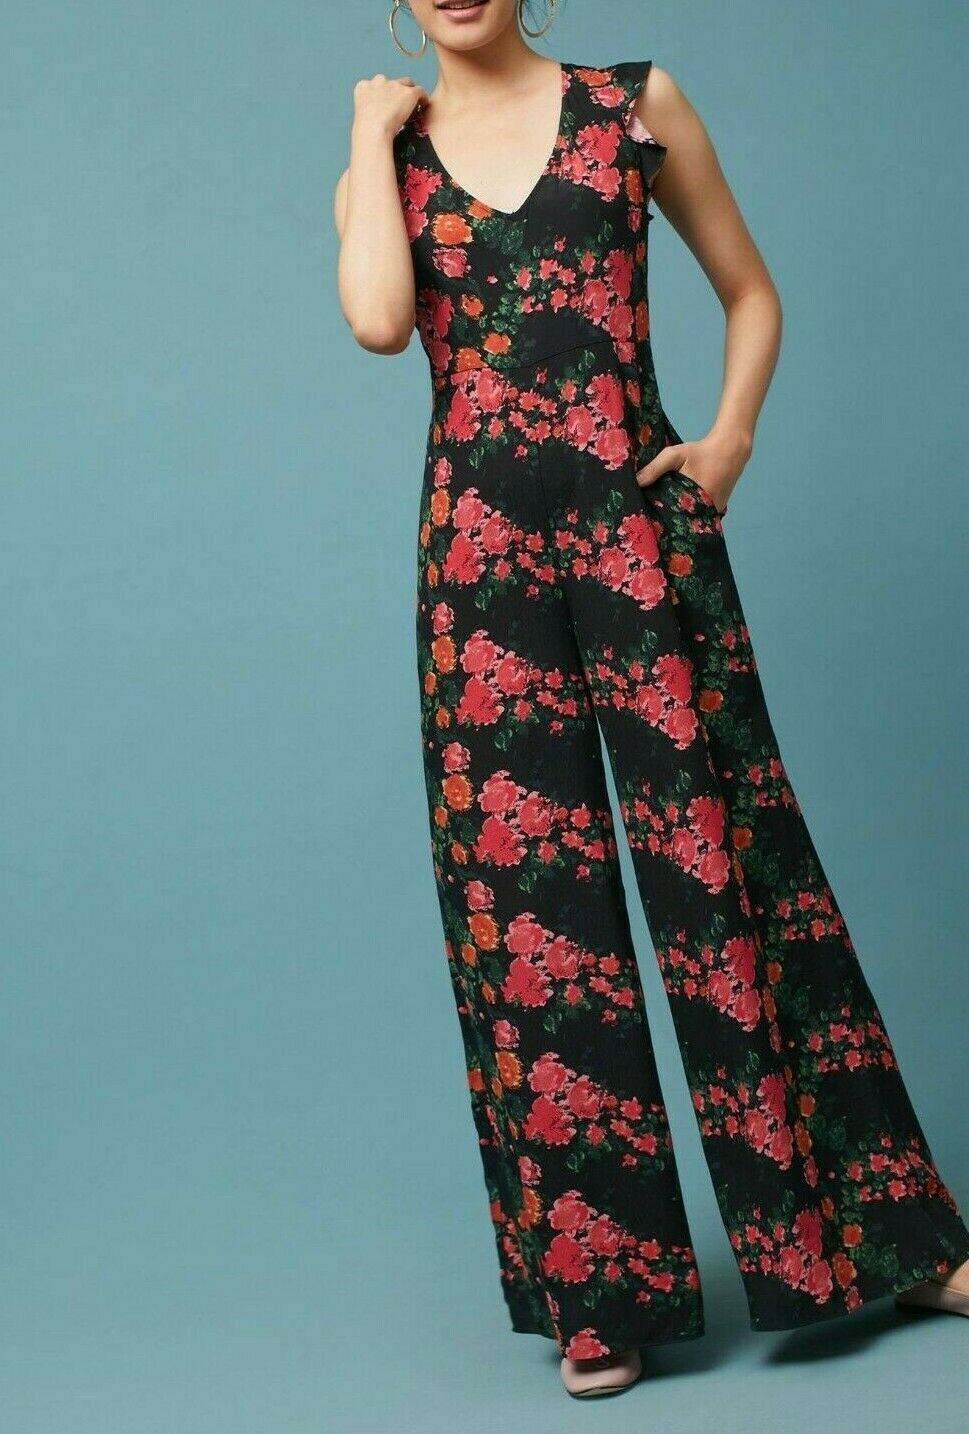 Anthropologie Laurette V-Neck Jumpsuit by Tracy Reese $198 Sz S - NWOT